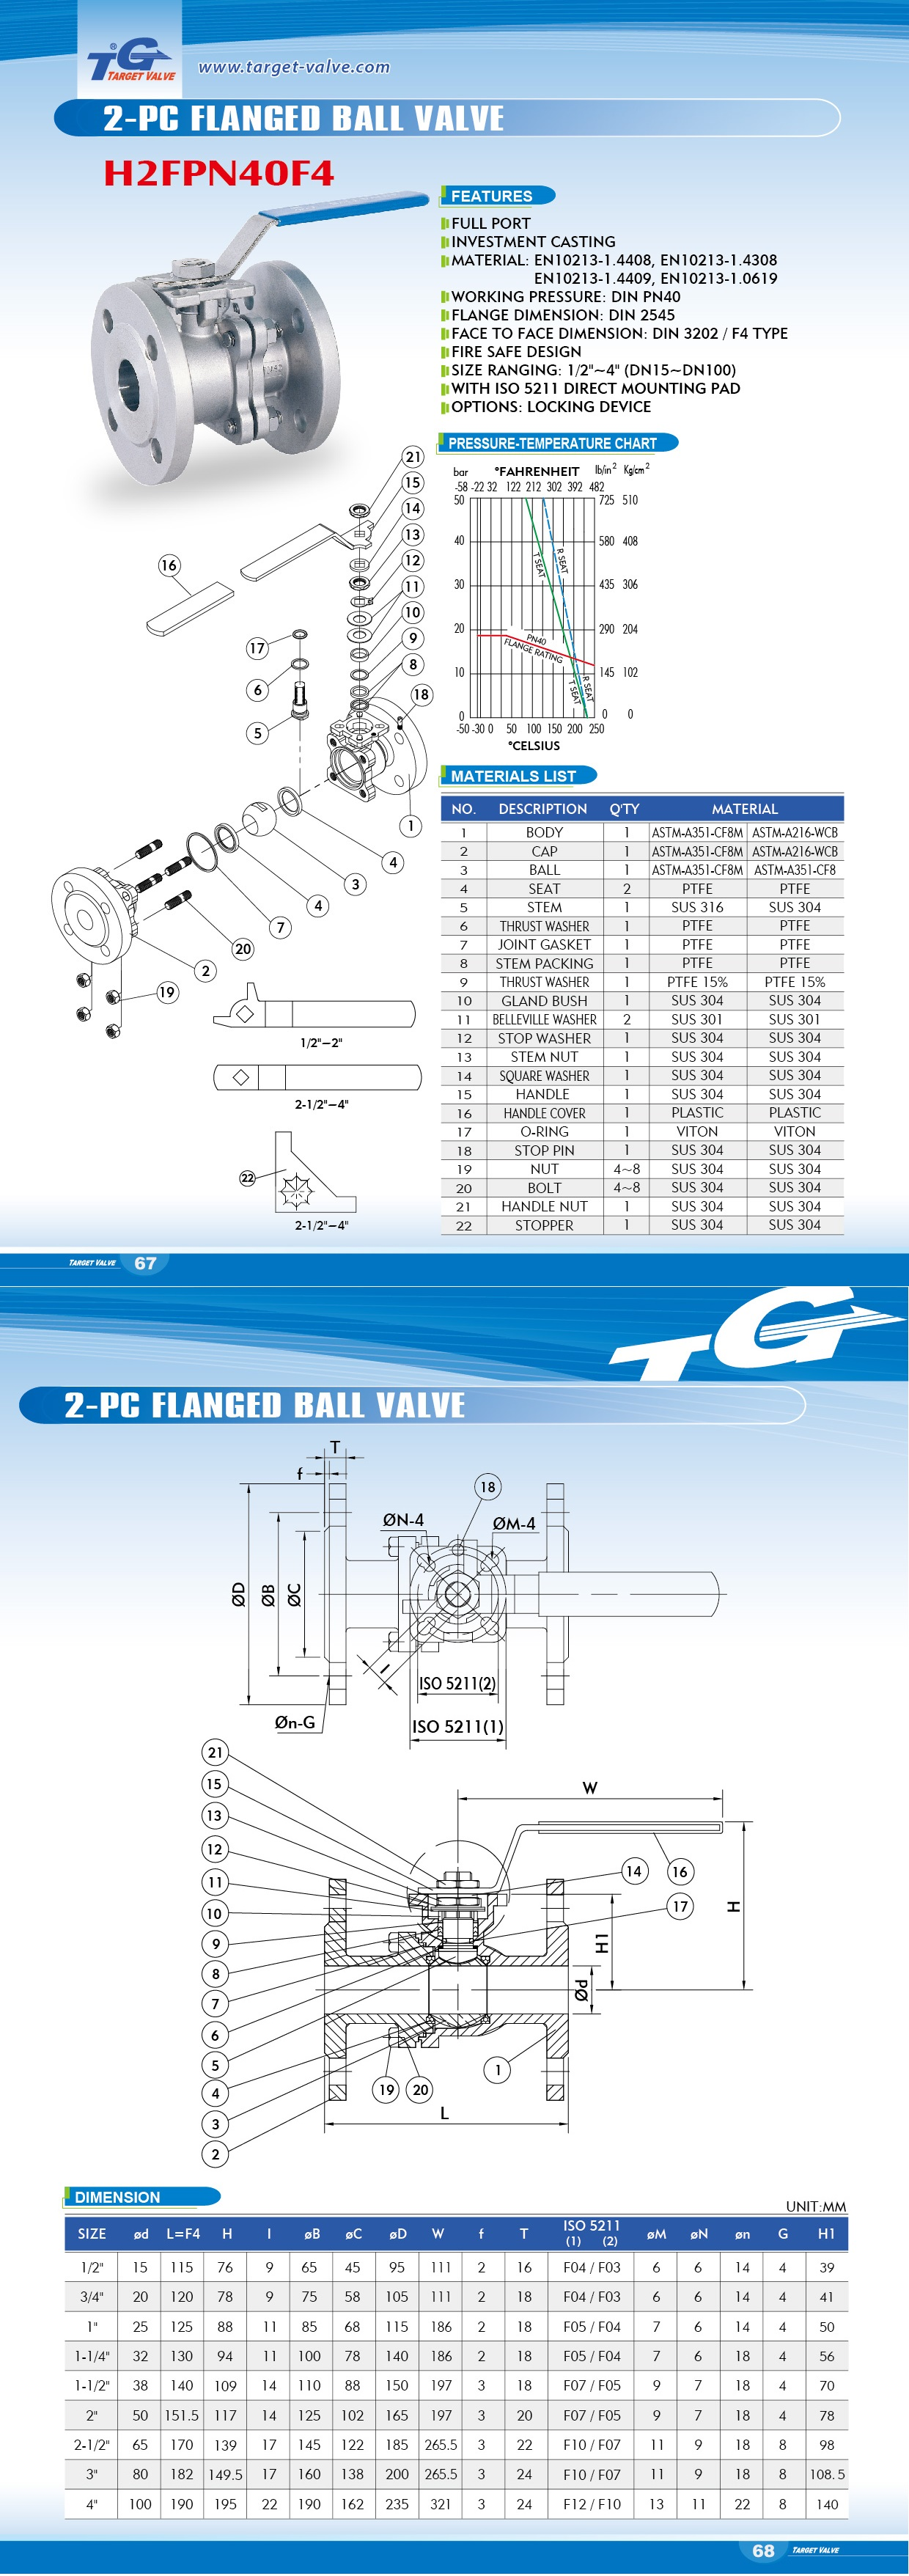 2 PC FLANGED BALL VALVE - H2FPN40F4